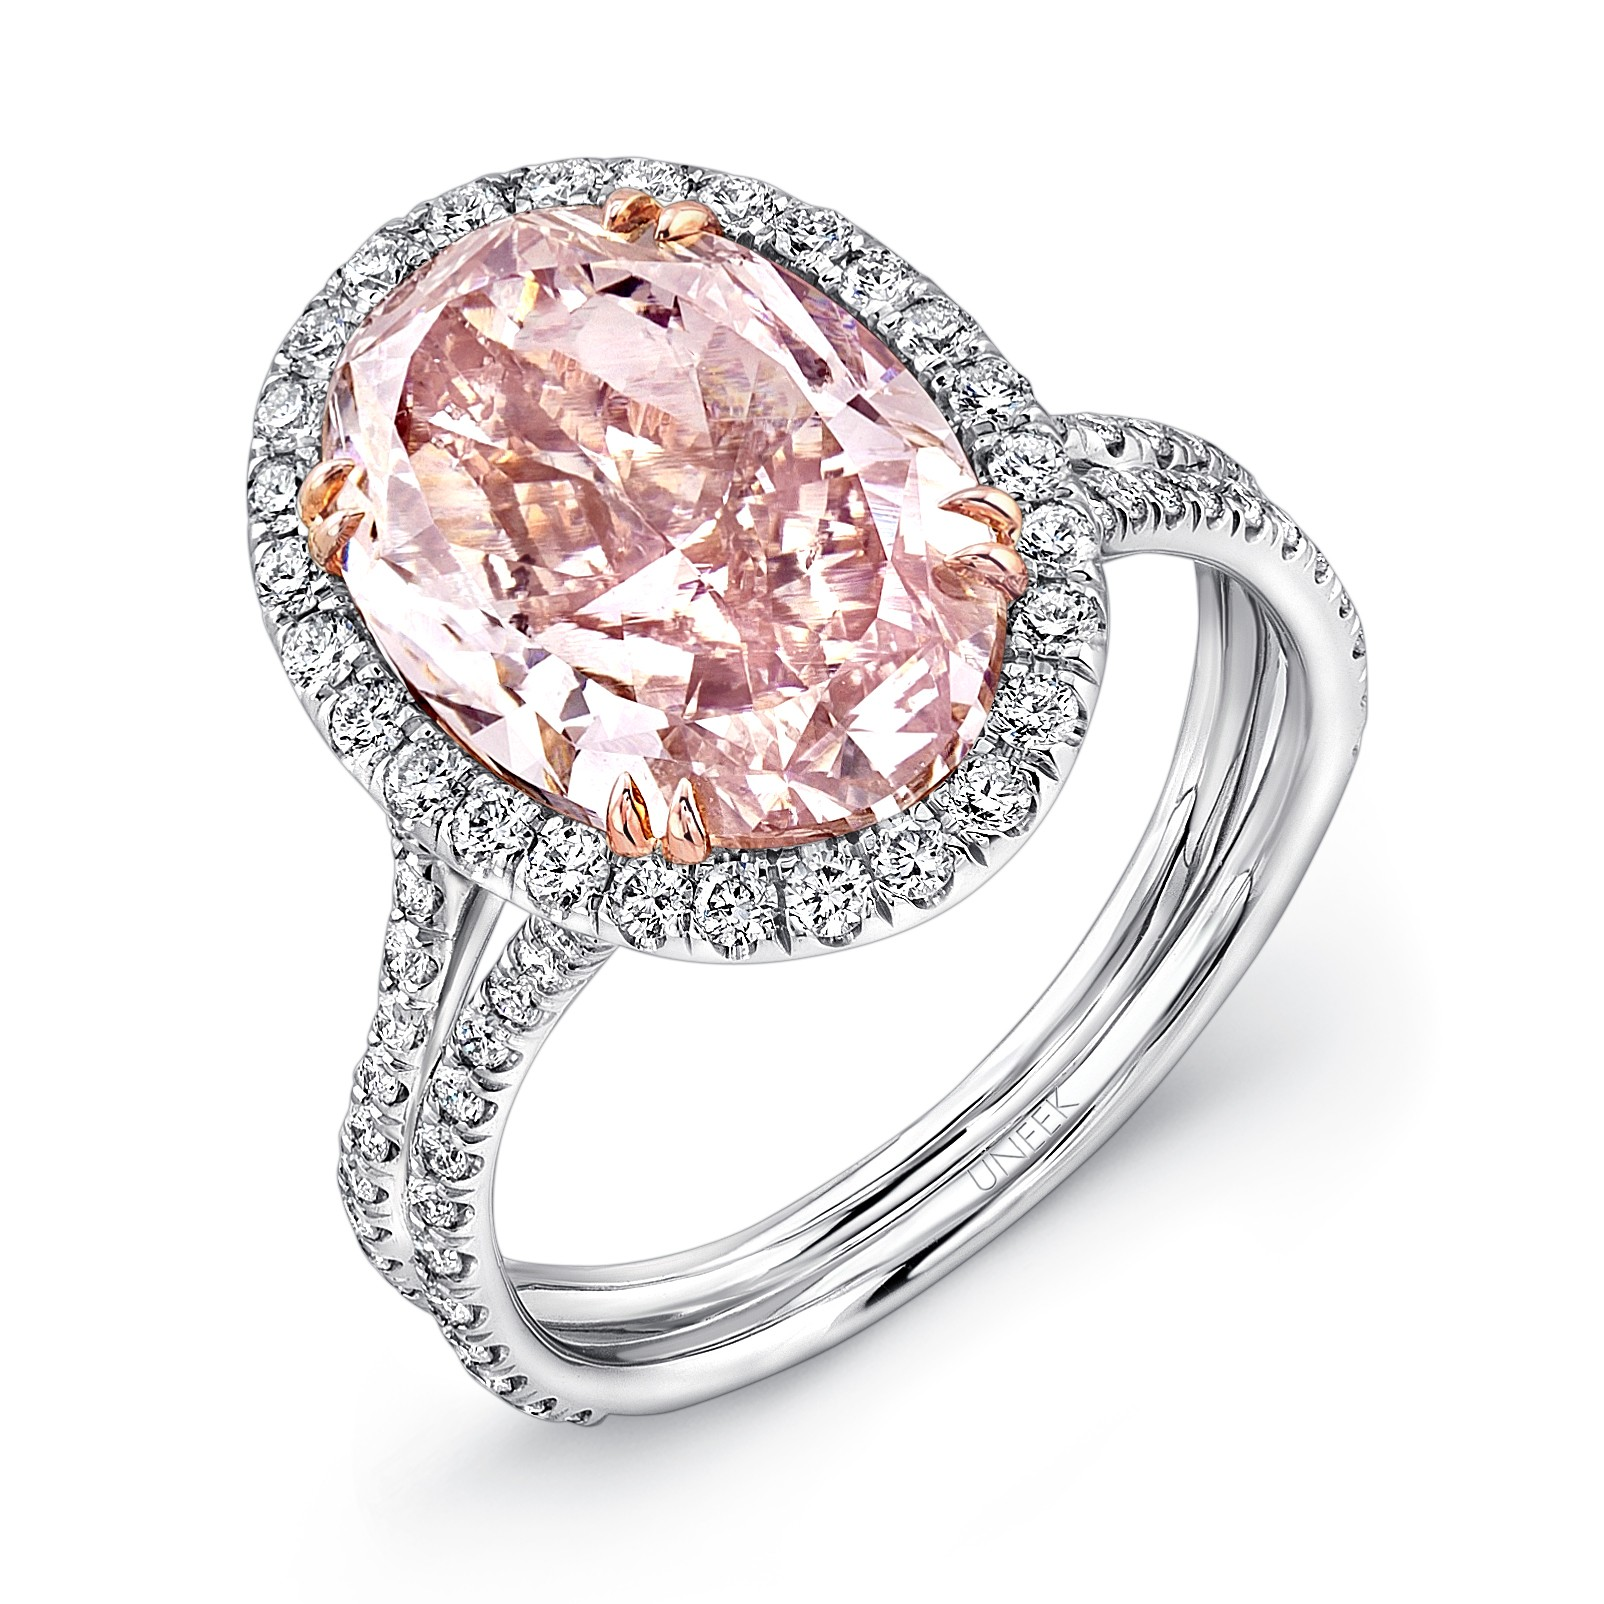 PINK DIAMOND ENGAGEMENT RING Perhanda Fasa